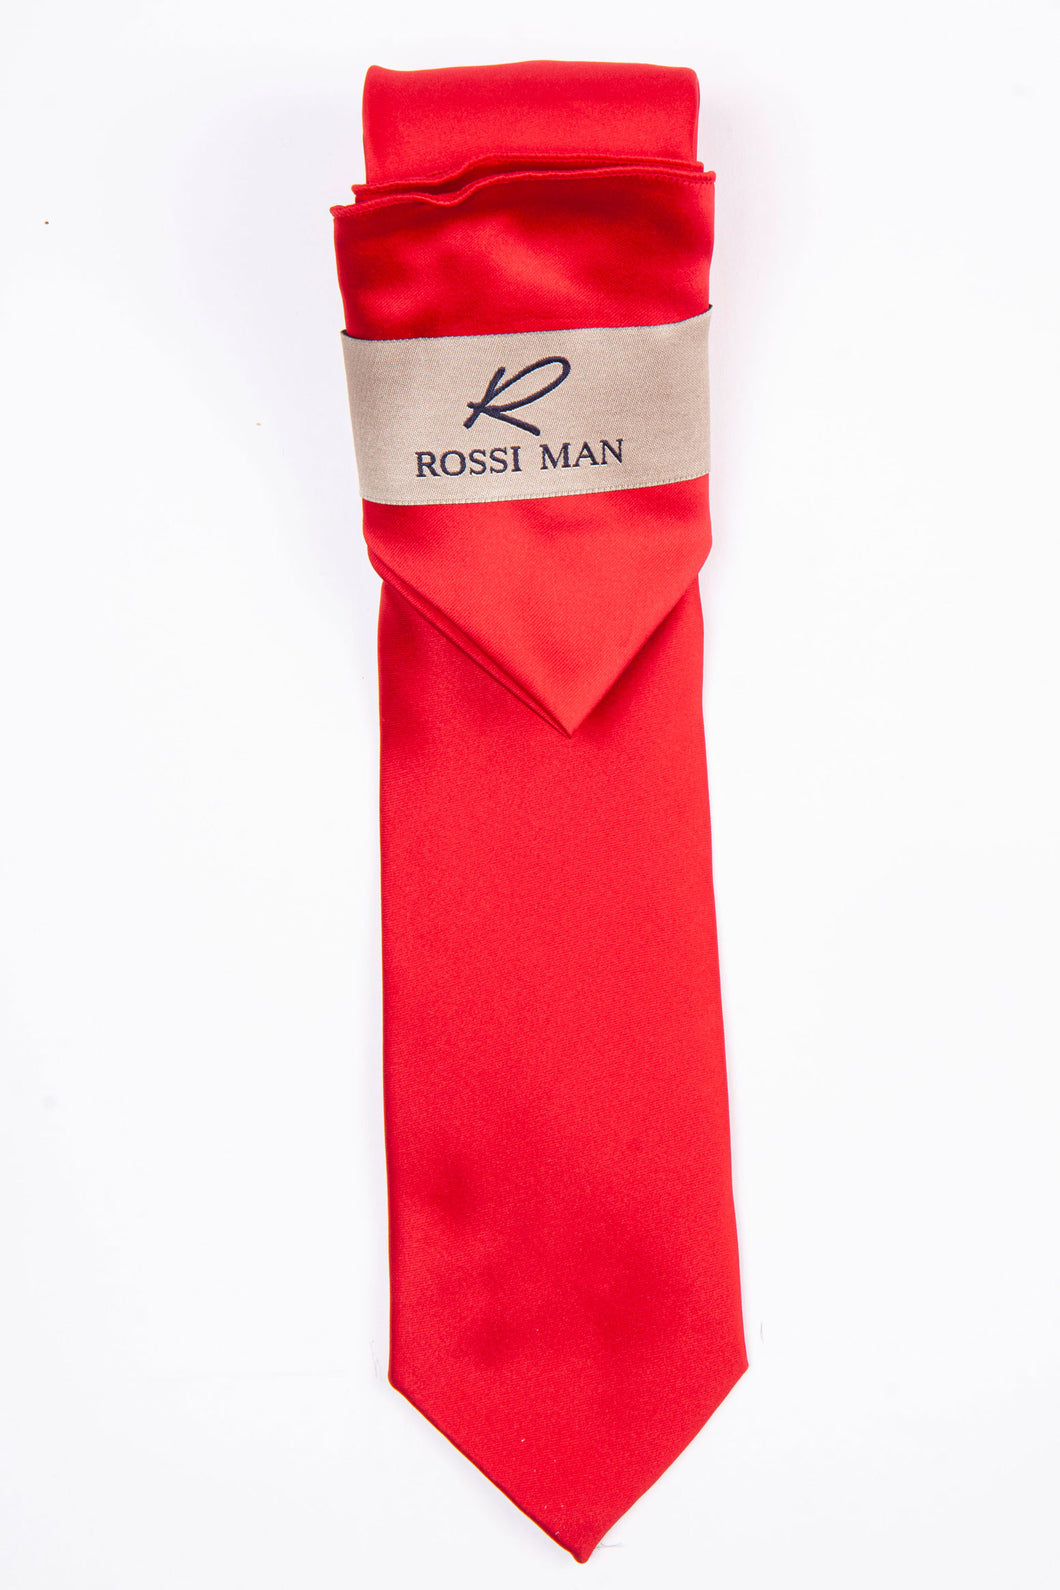 Rossi Man Tie and Pocket Round - RMR665-3